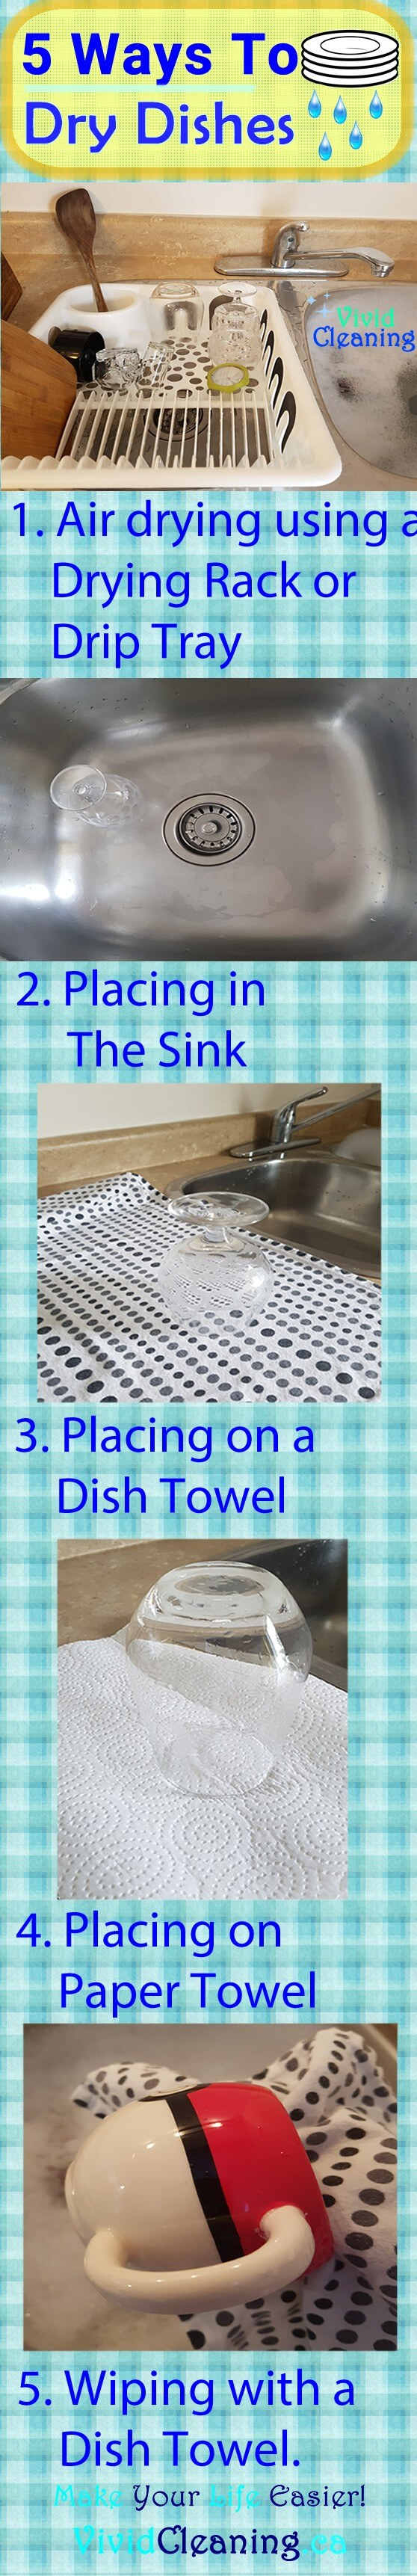 When it comes to drying dishes we may be limited for materials and space. Say you don't have drying rack. There are other ways to dry dishes without it. You could also be on a budget, don't have enough time to go shopping or need to do laundry. Here are alternative ways to dry dishes.